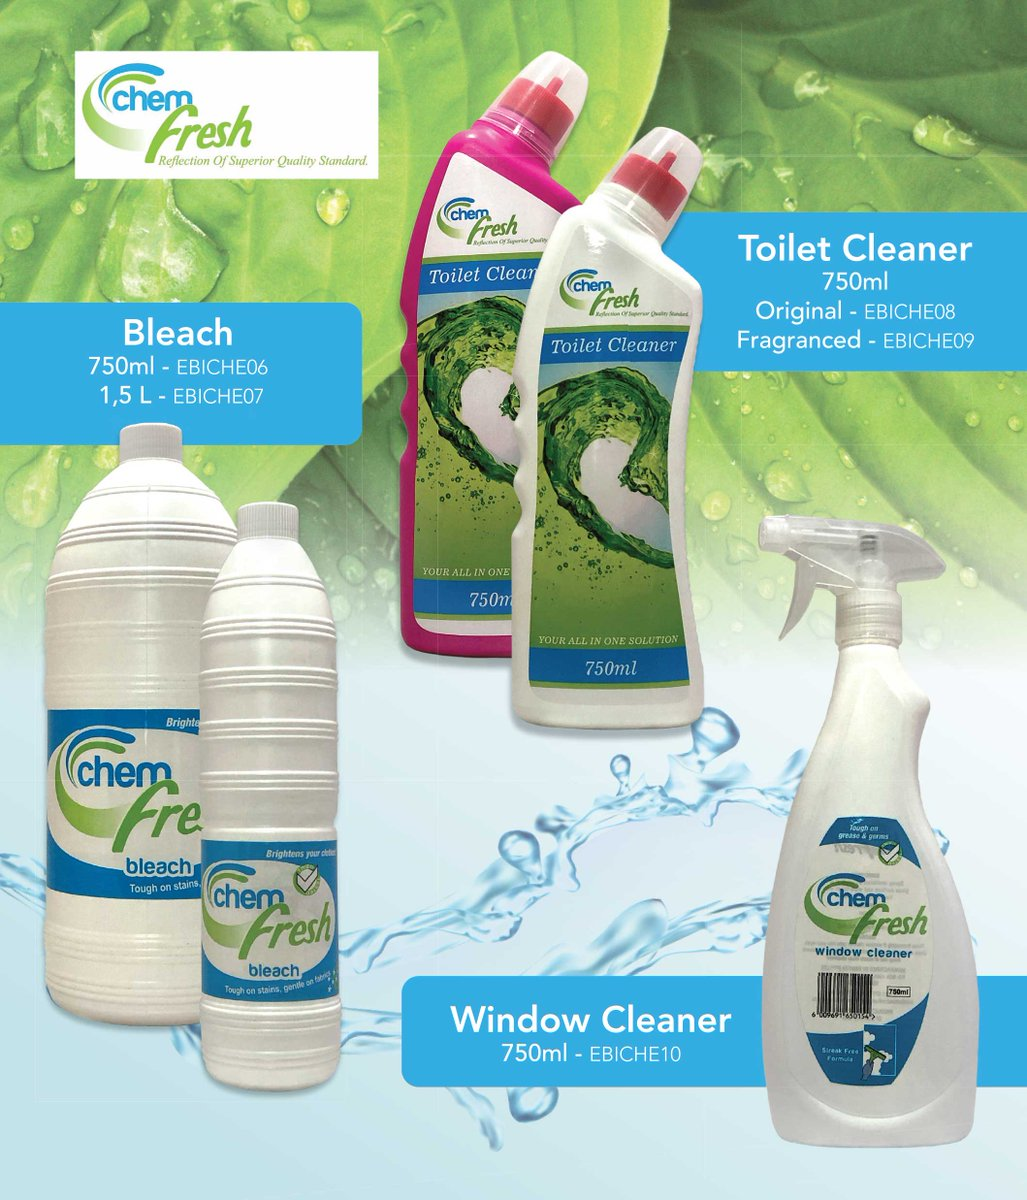 Bleach is a disinfectant and cleaner it does a fantastic job of killing germs and bacteria. it removes tough stains and whitens clothing.Toilet brown stains and bacteria can be stressful sometimes.Chem fresh toilet cleaner removes stains and kills bacterias. Chemfresh_SA https://t.co/5FLhrjIecm